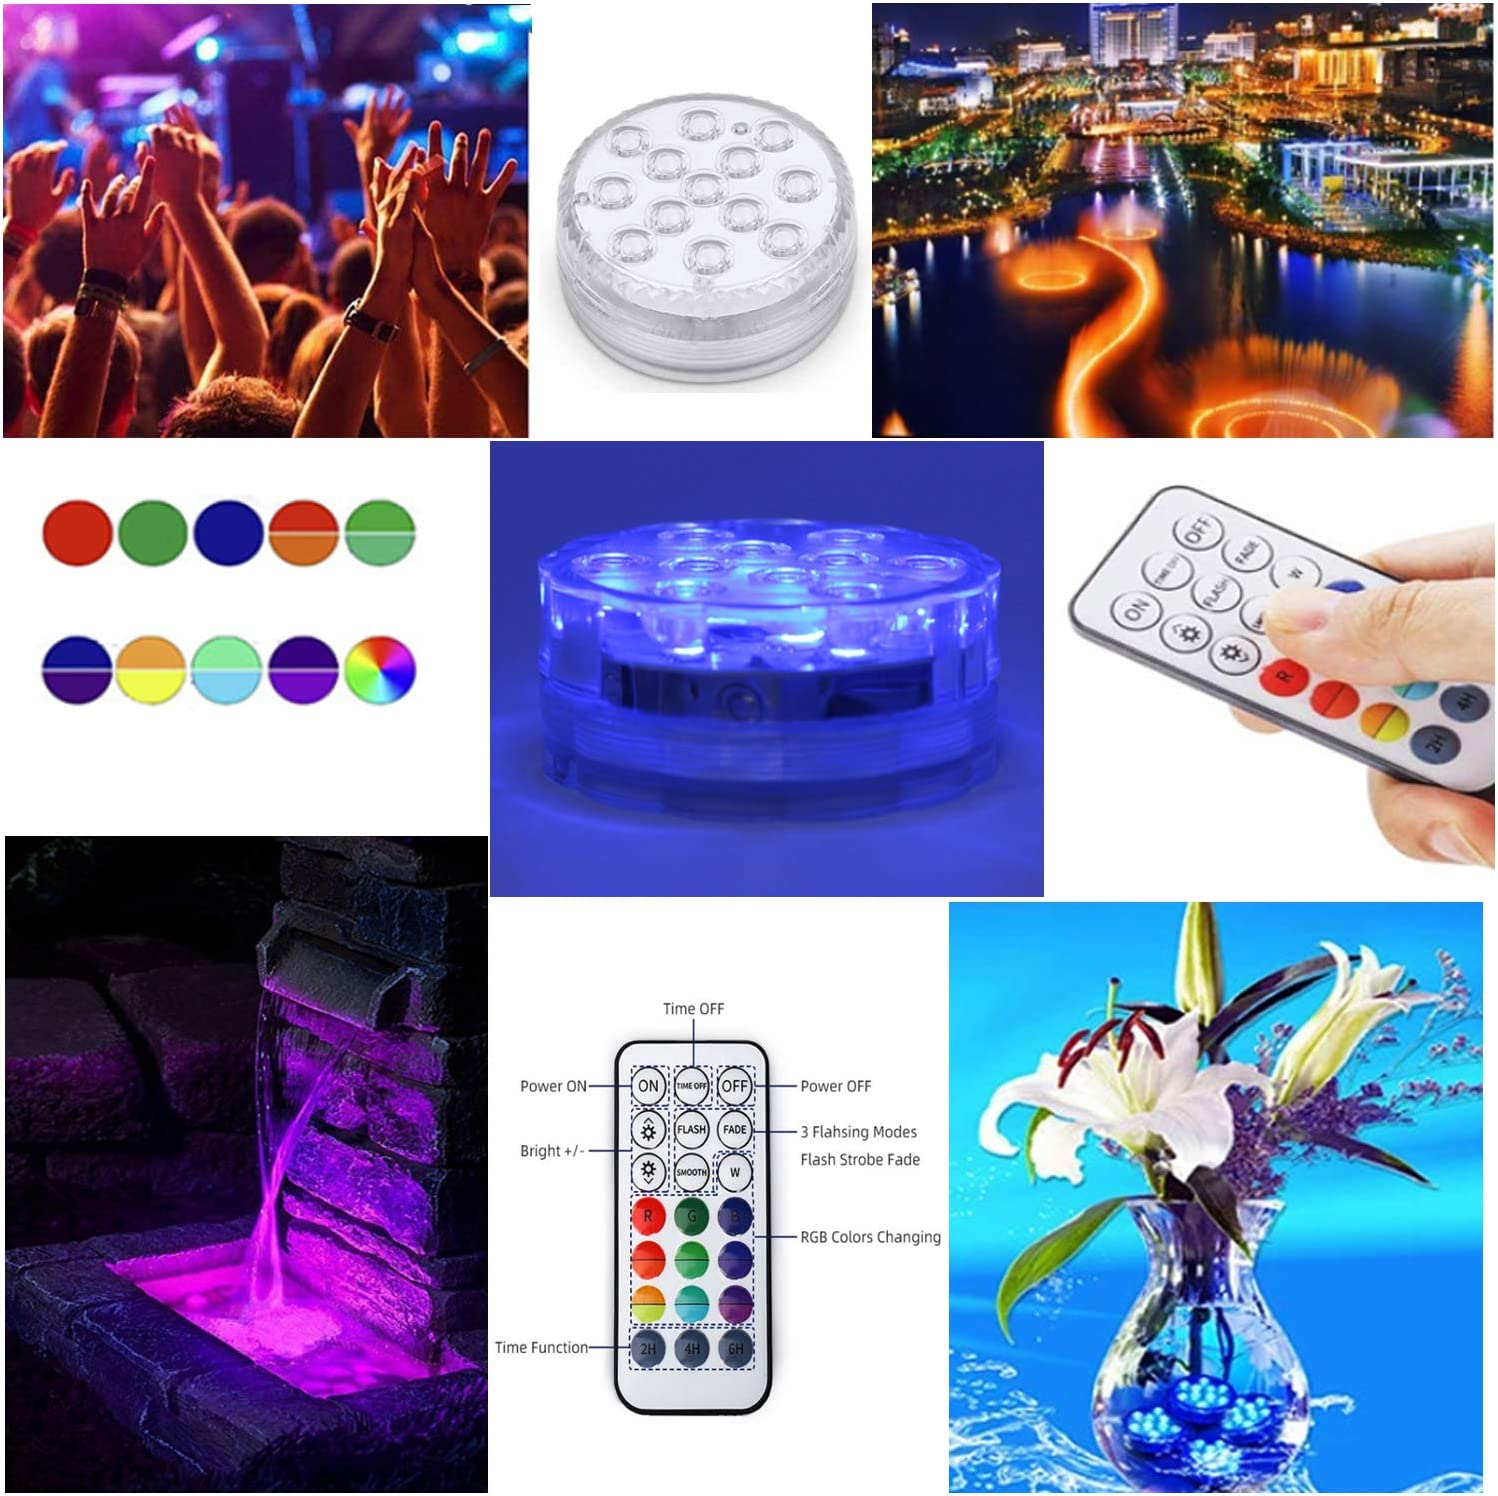 Waterproof Underwater Light Submersible LED Lights with Remote Control Suckers Hot Tub Lights Multi Colors RGB Changing Pond Lights Underwater Pool Lights,Bath Spa Lights for Parties,Aquarium,Xmas